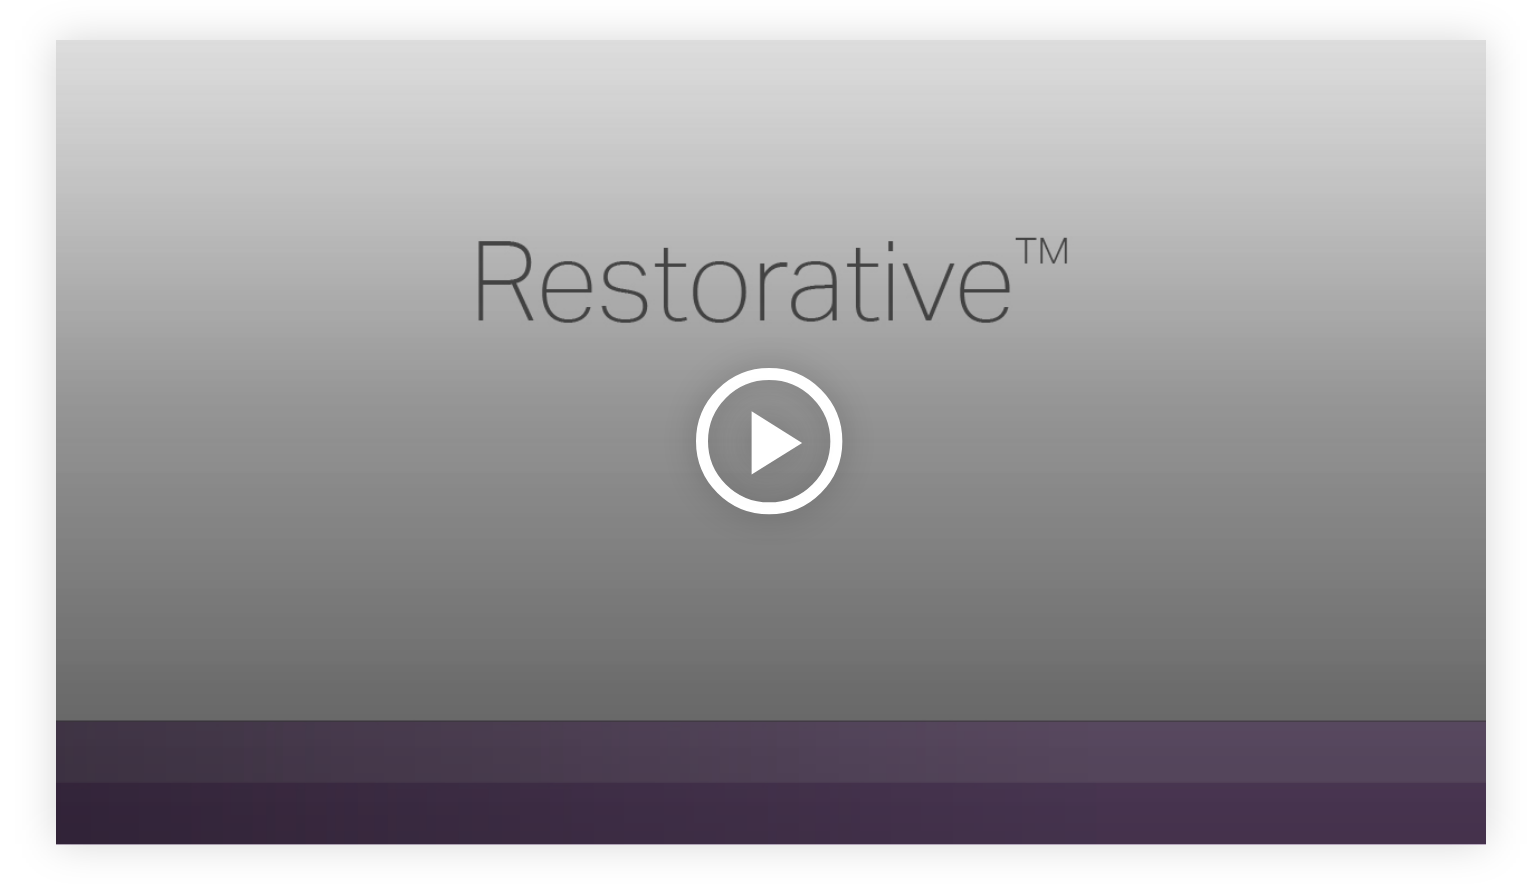 Play video: Restorative - Learn more about your innate talents from Gallup's Clifton StrengthsFinder!